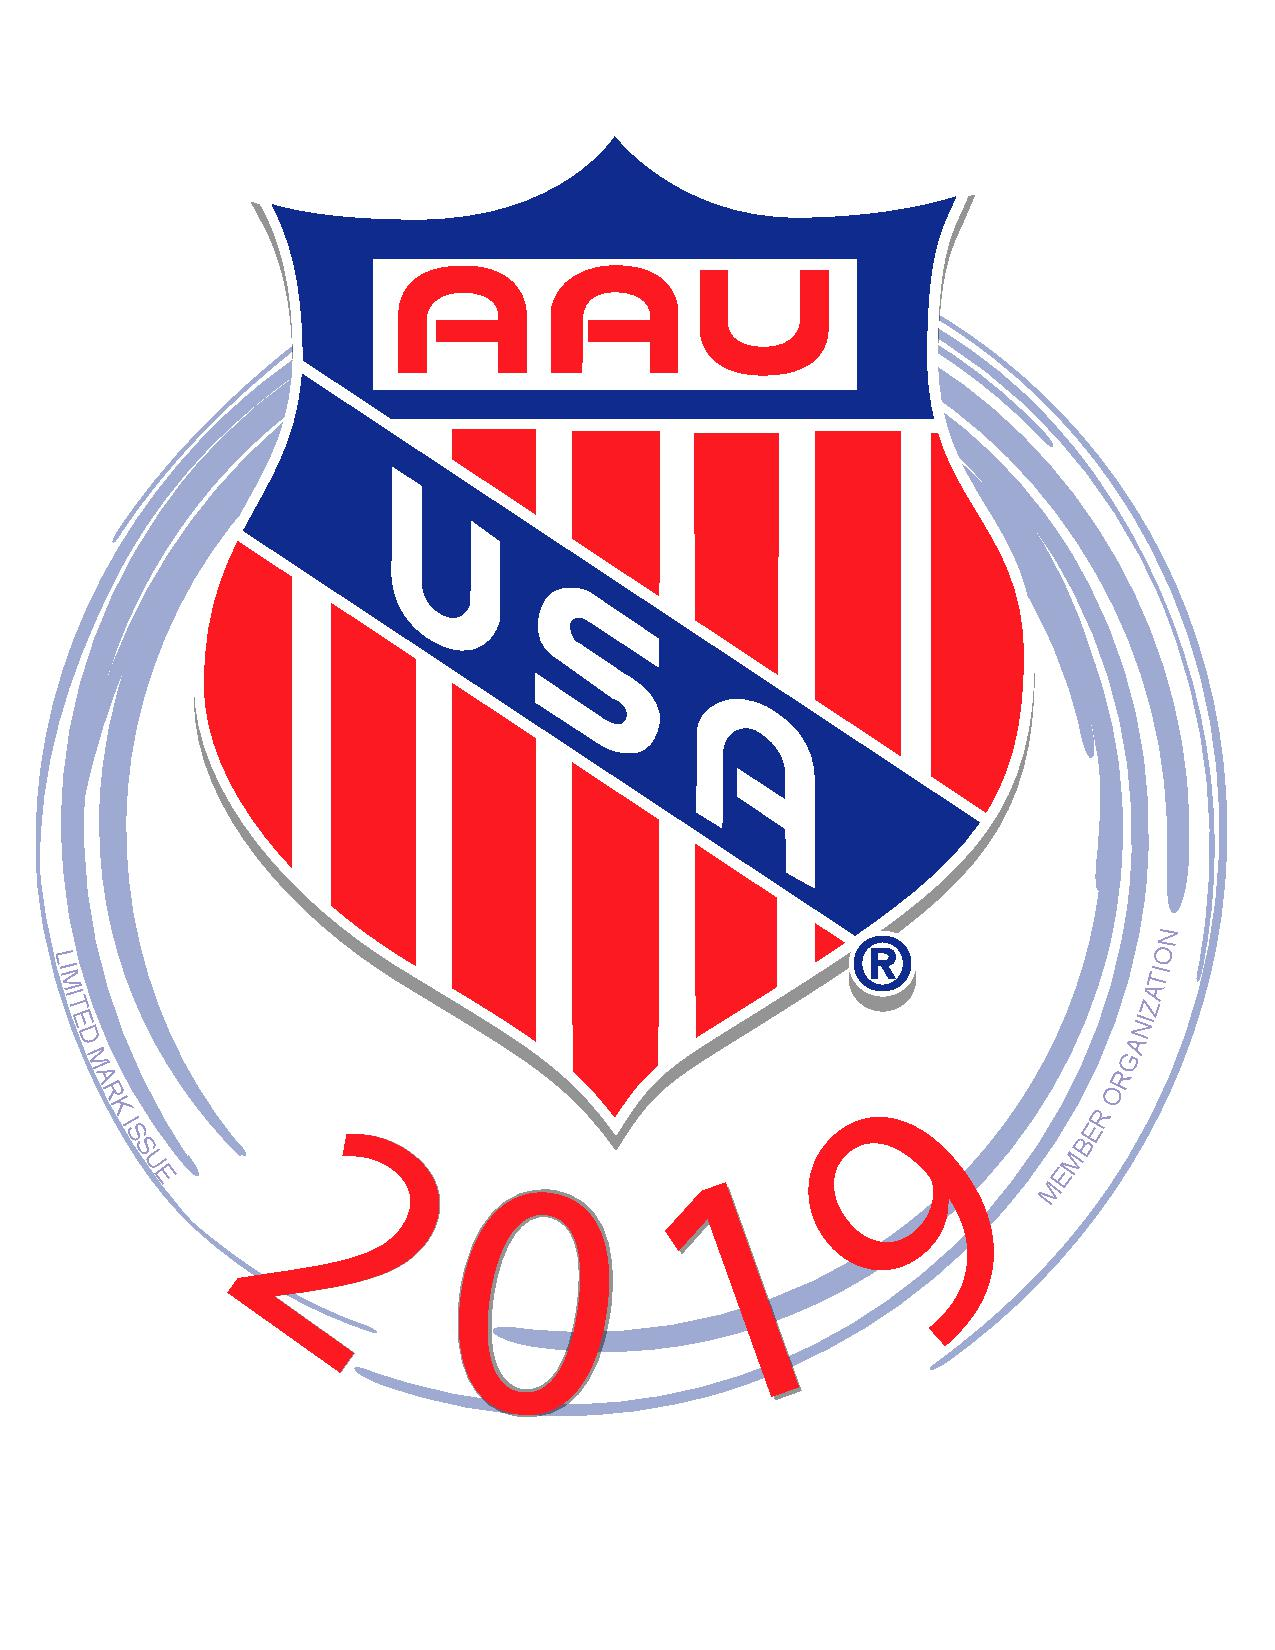 OFFICIAL-2019-MEMBERSHIP-logo (1).jpg